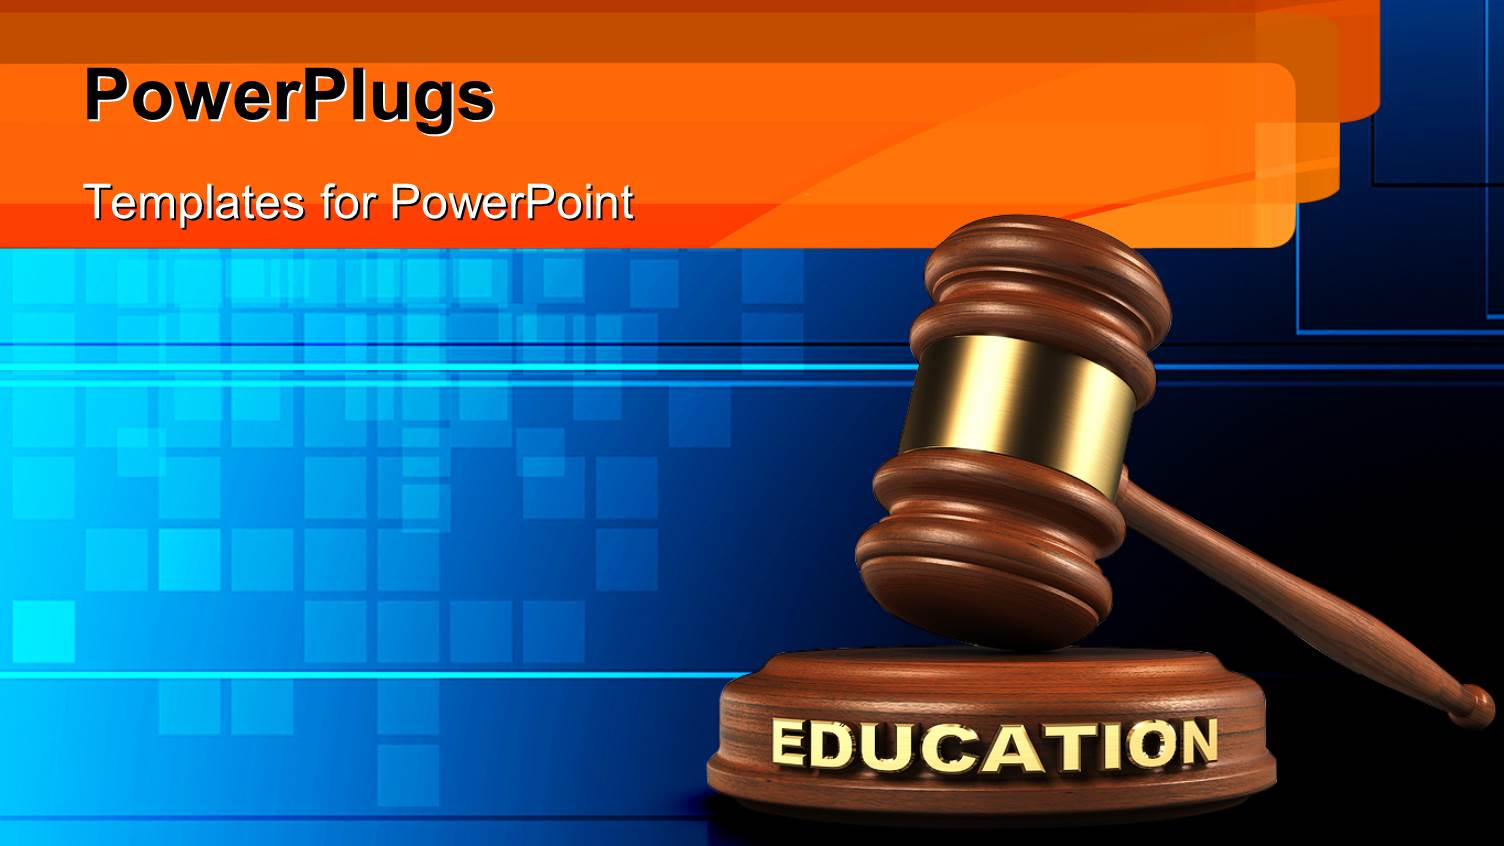 Powerpoint template hammer and education gavel on blue for Power plugs powerpoint templates